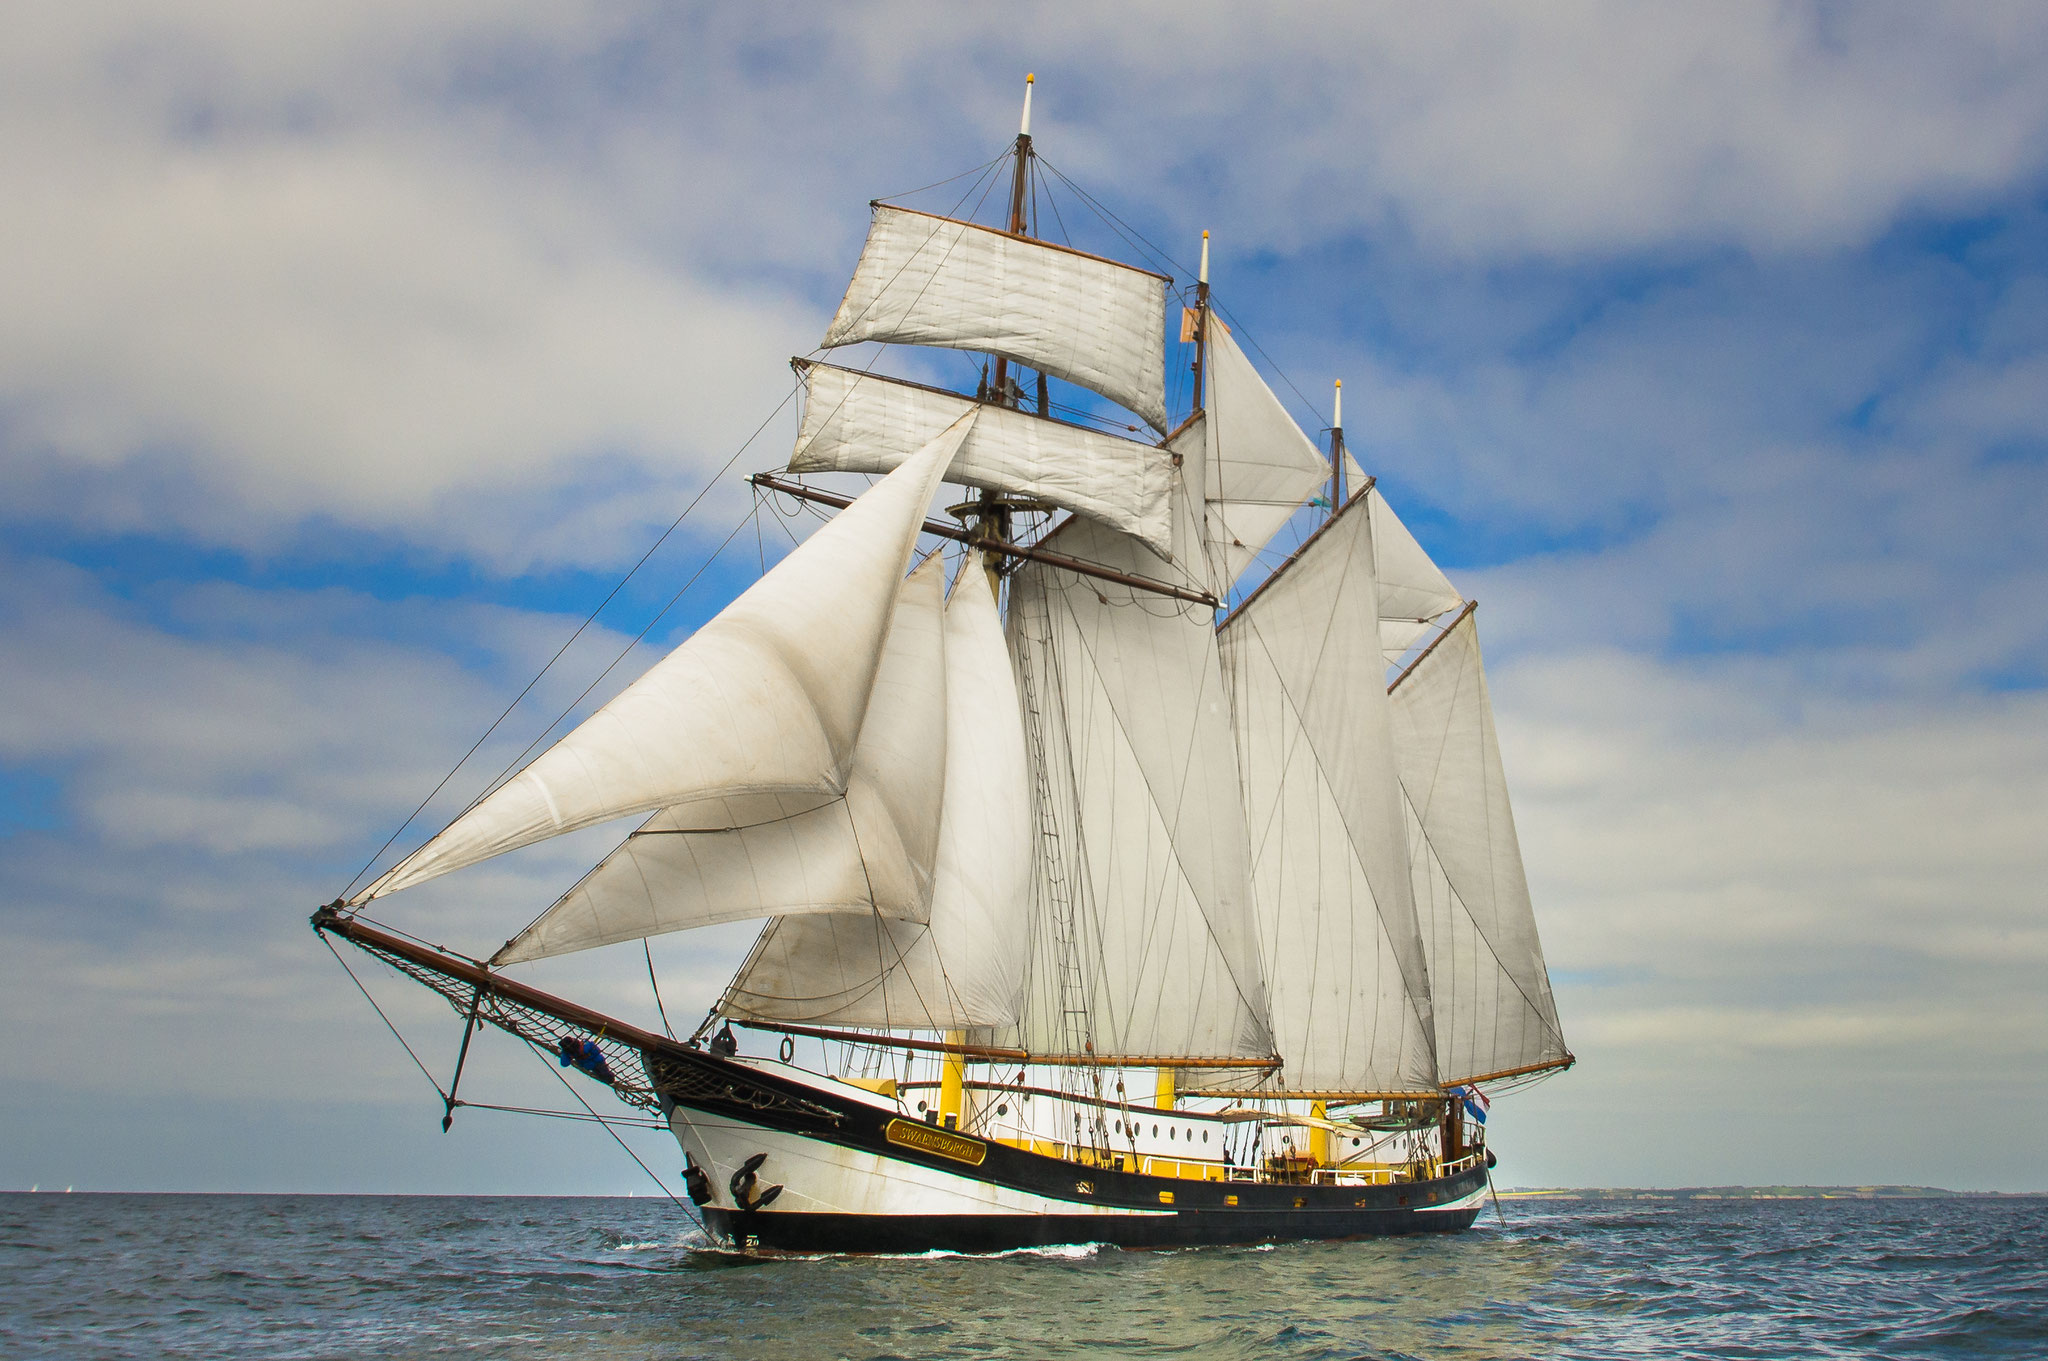 sailing ship Swaensborgh